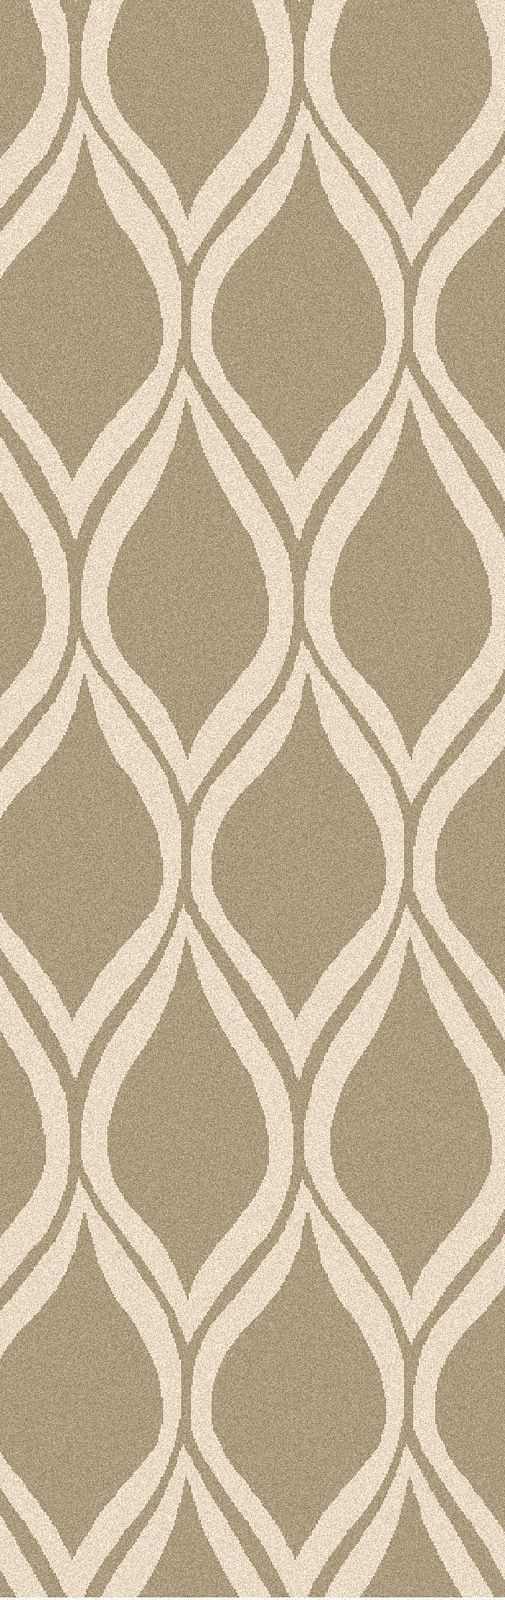 surya stamped contemporary area rug collection